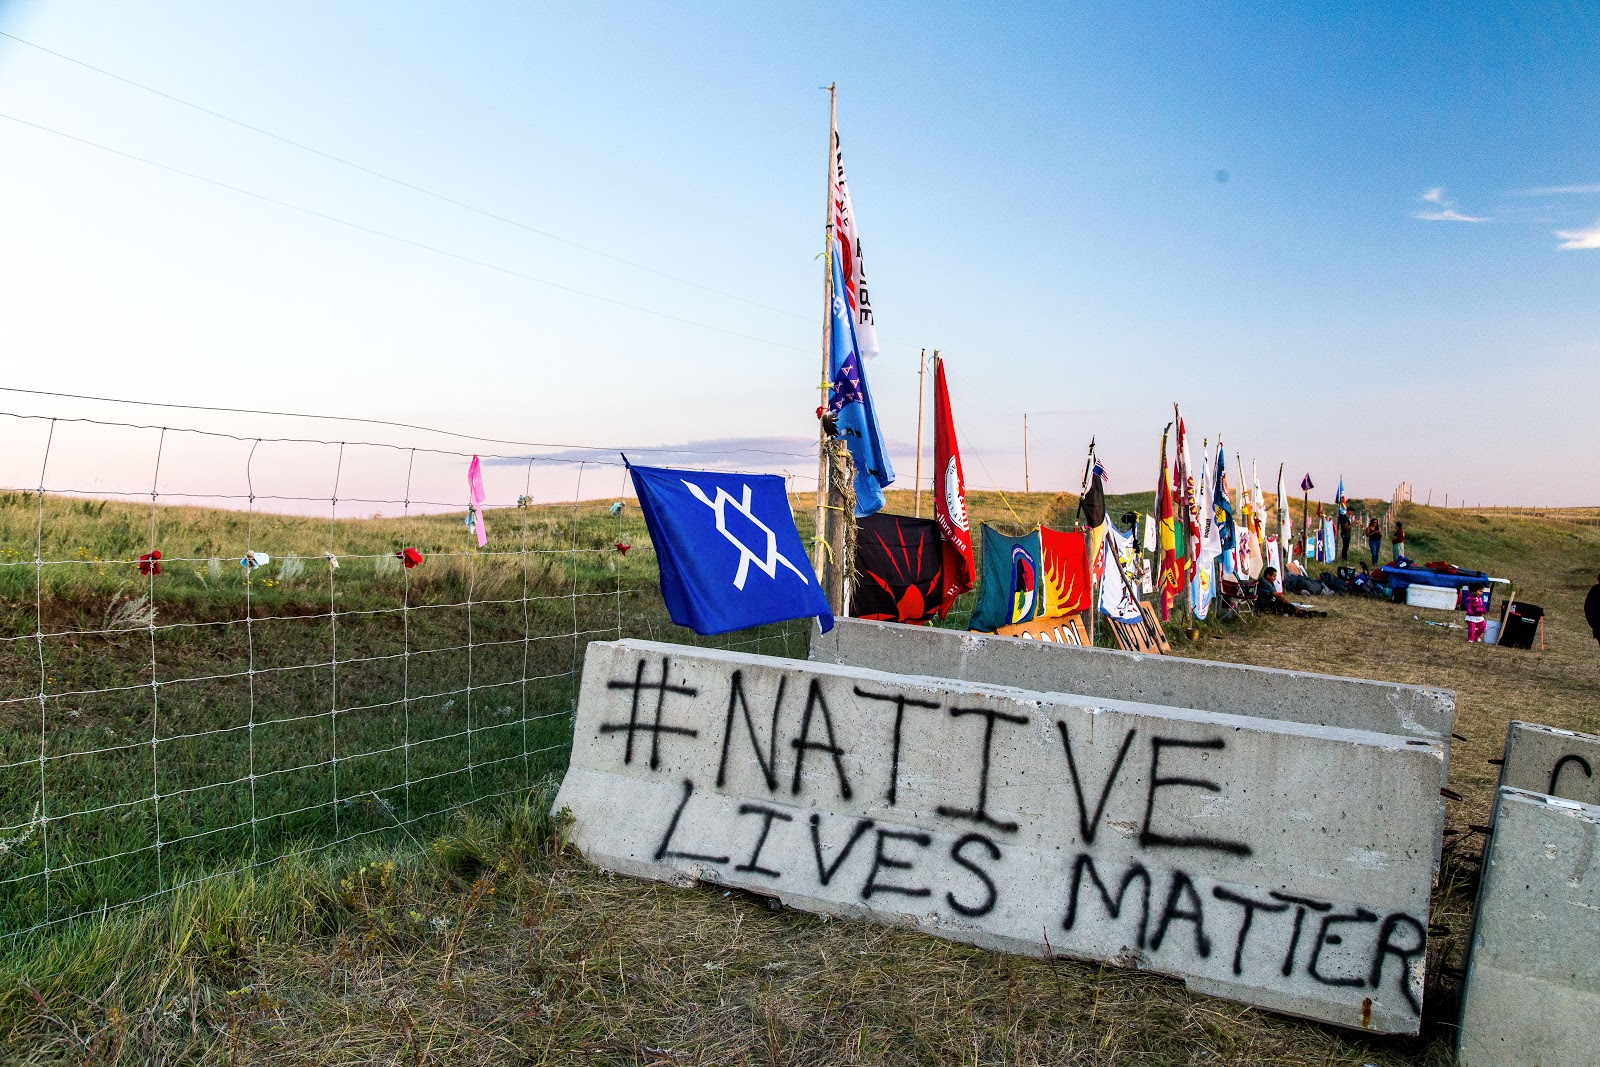 Flags from many nations line the fence outside the Dakota Access pipeline construction site. (Photo: Alex Hamer)